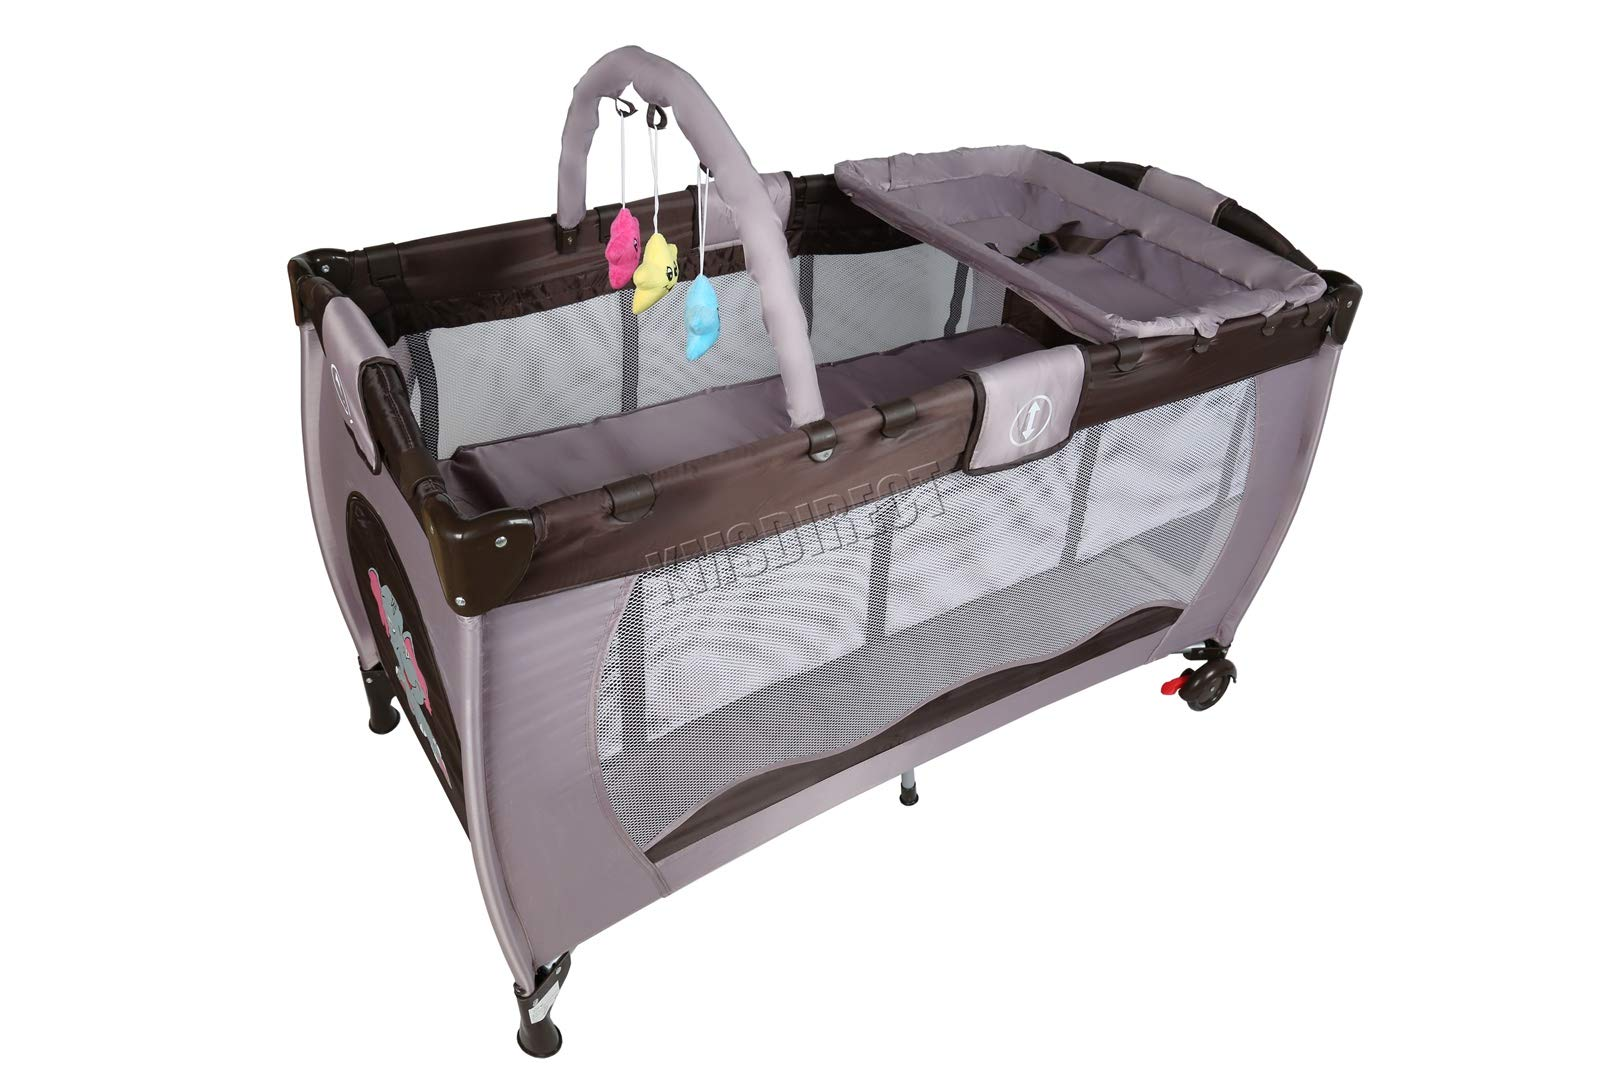 FoxHunter Portable Baby Cot Sleeping Bed Kids Infant Playpen Bassinet Child Play Pen with Entryway Travel BCB01 Coffee FoxHunter Travel cot easy to assemble and disassemble thanks to folding mechanism; igh quality and light weight; Fast and easy set-up, safe material and easy to clean; 4